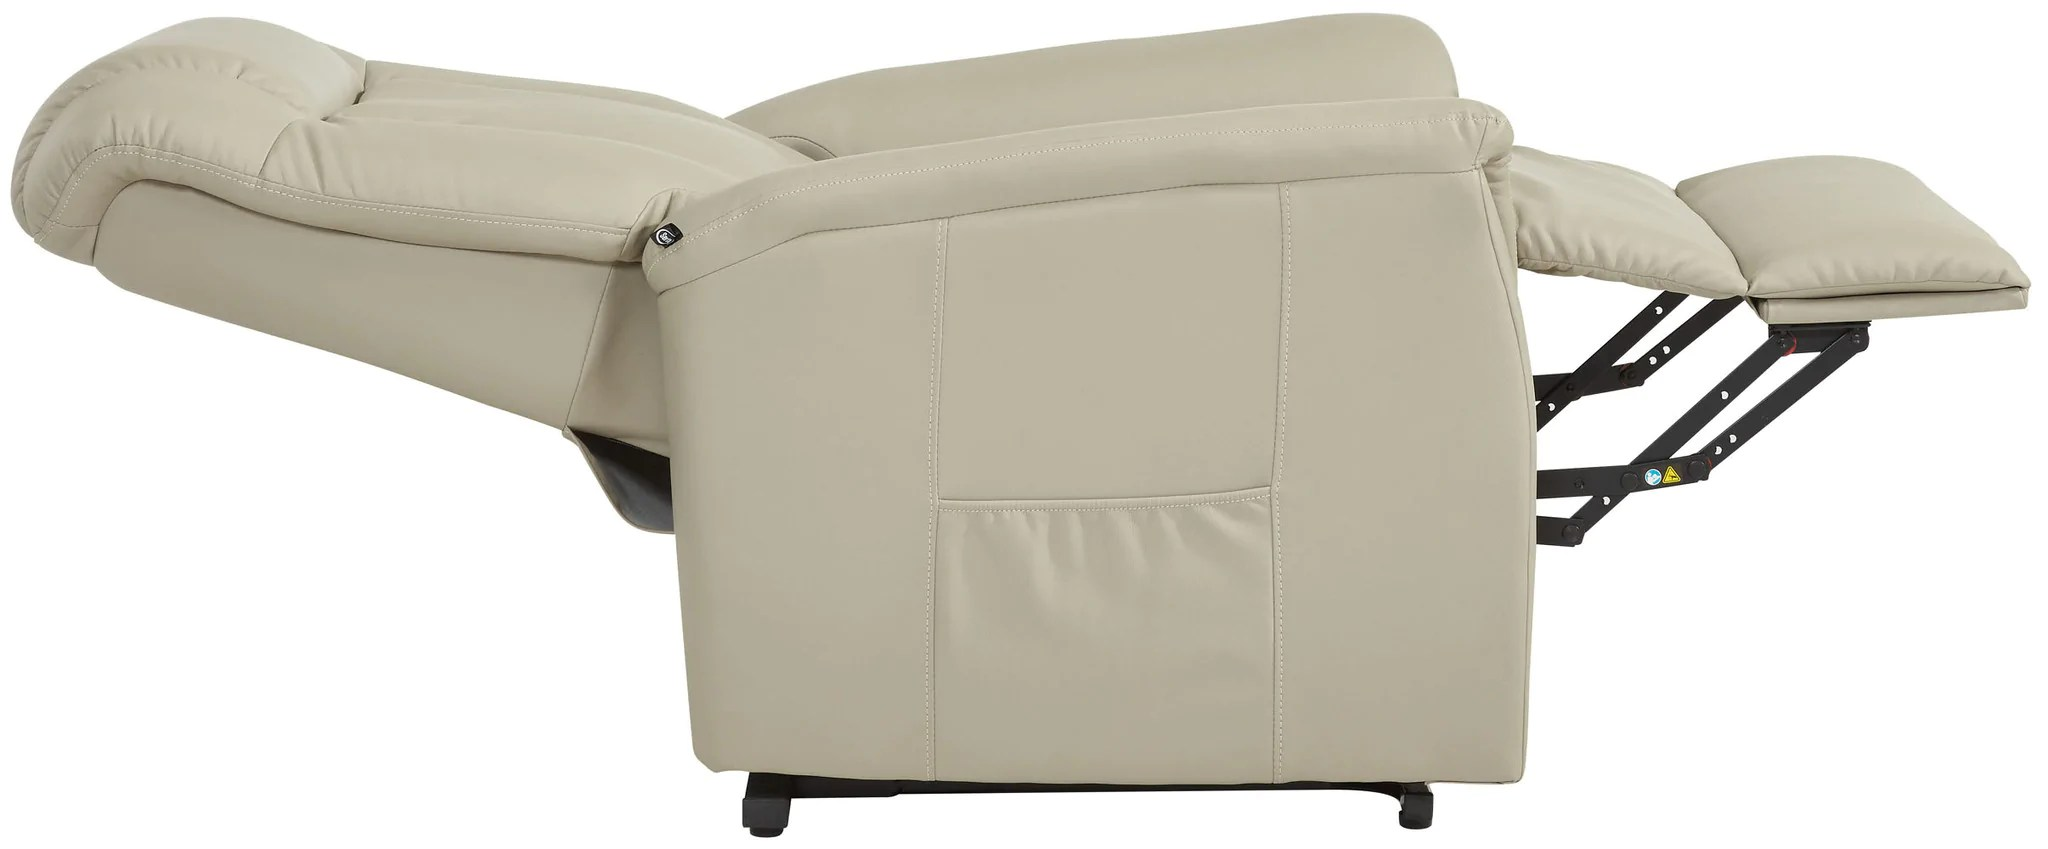 lay flat recliner chairs ikea black leather chair serta comfort lift full and massage comfortlift winston